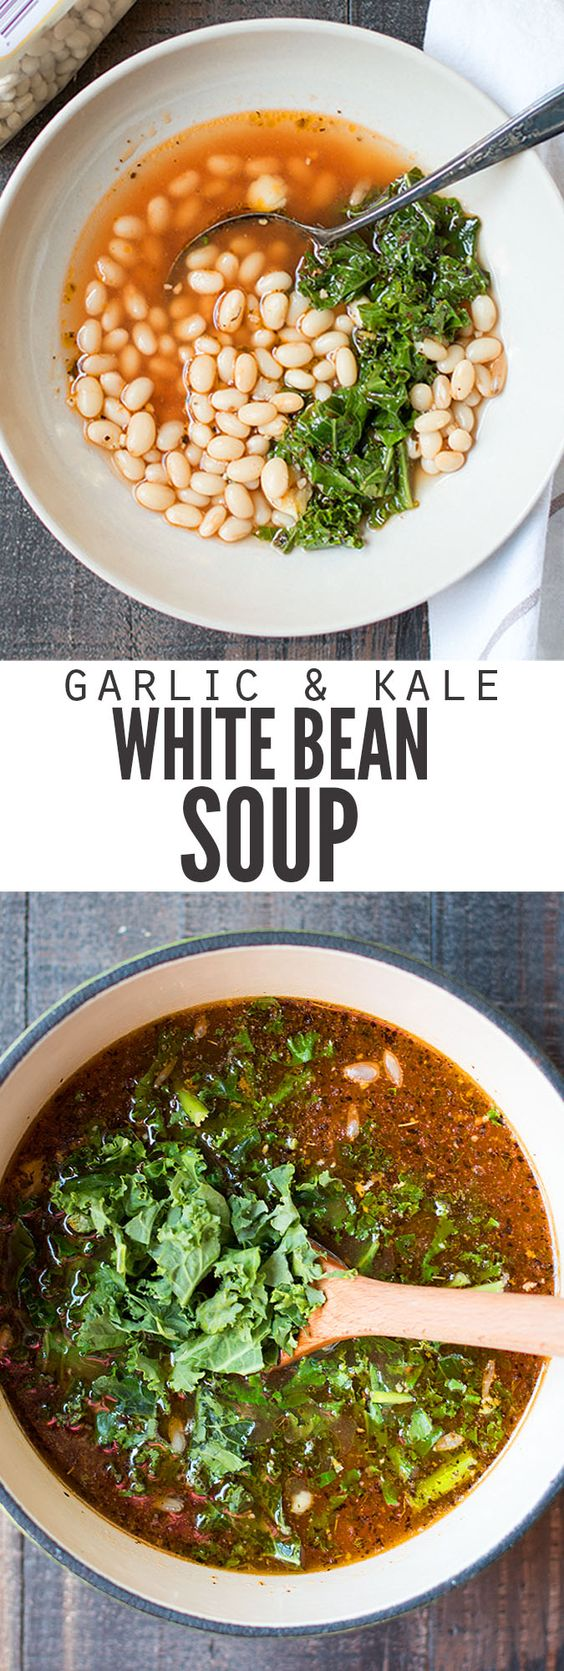 Make a pot of garlic white bean soup with kale and your house will smell like Tuscany! Four basic pantry ingredients make this affordable yet super healthy. :: DontWastetheCrumbs.com